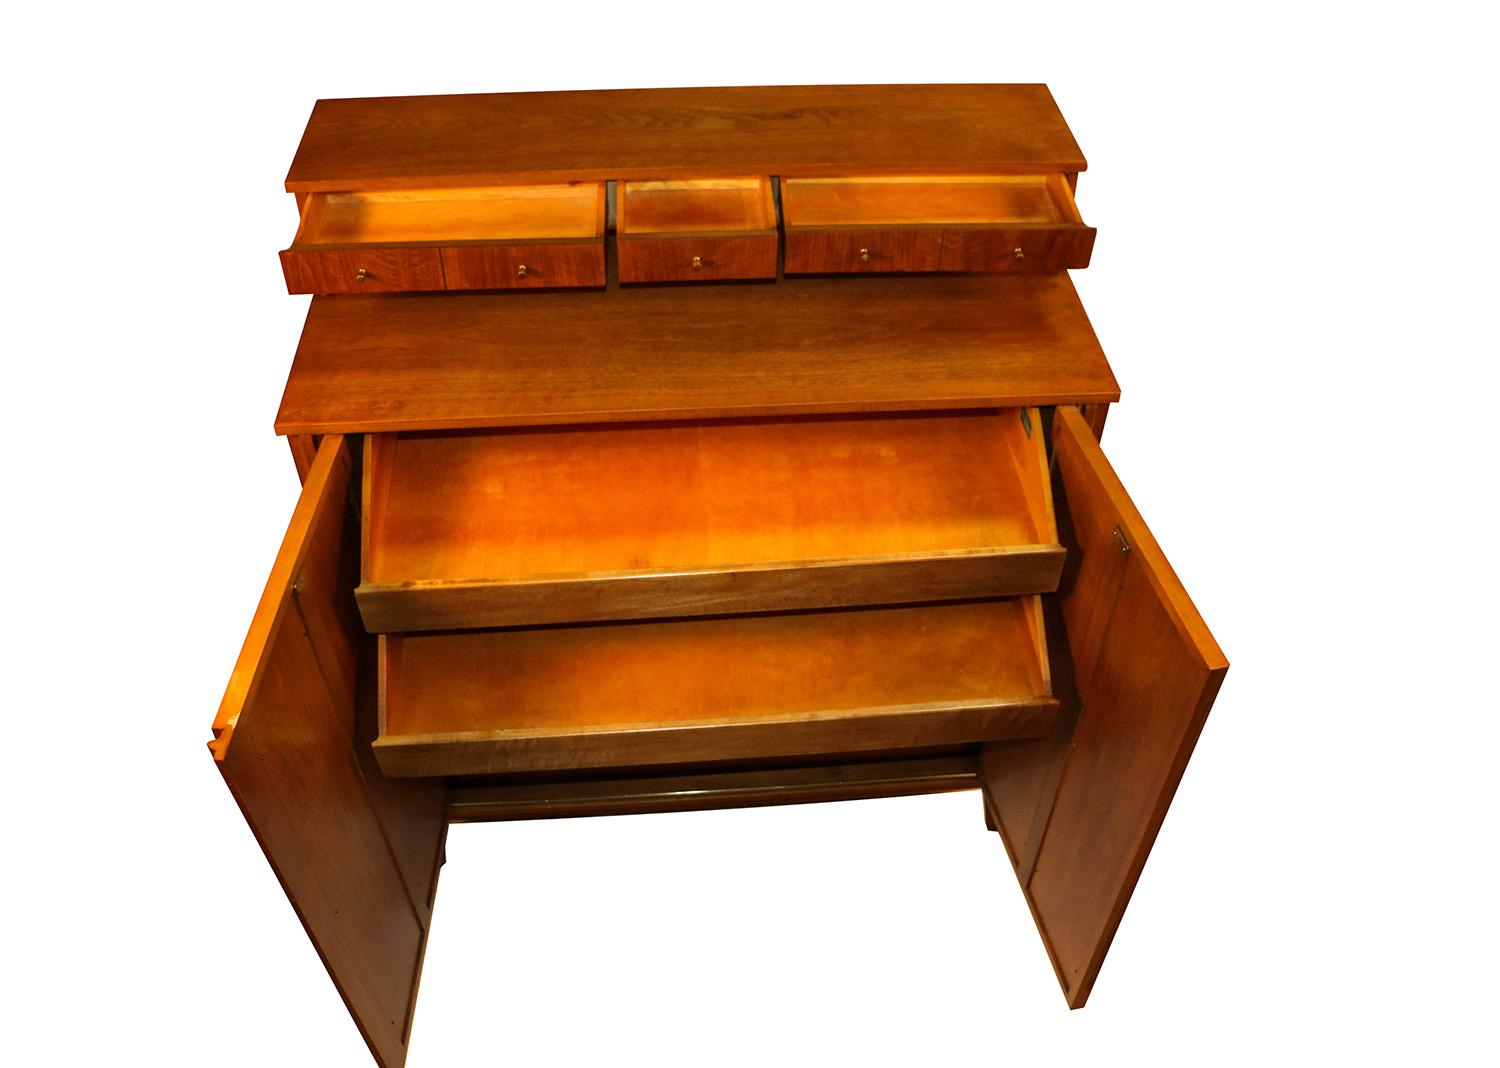 West Michigan Furniture Company Mid Century Modern Bar Cabinet Highboy  Dresser   Image 4 Of 11